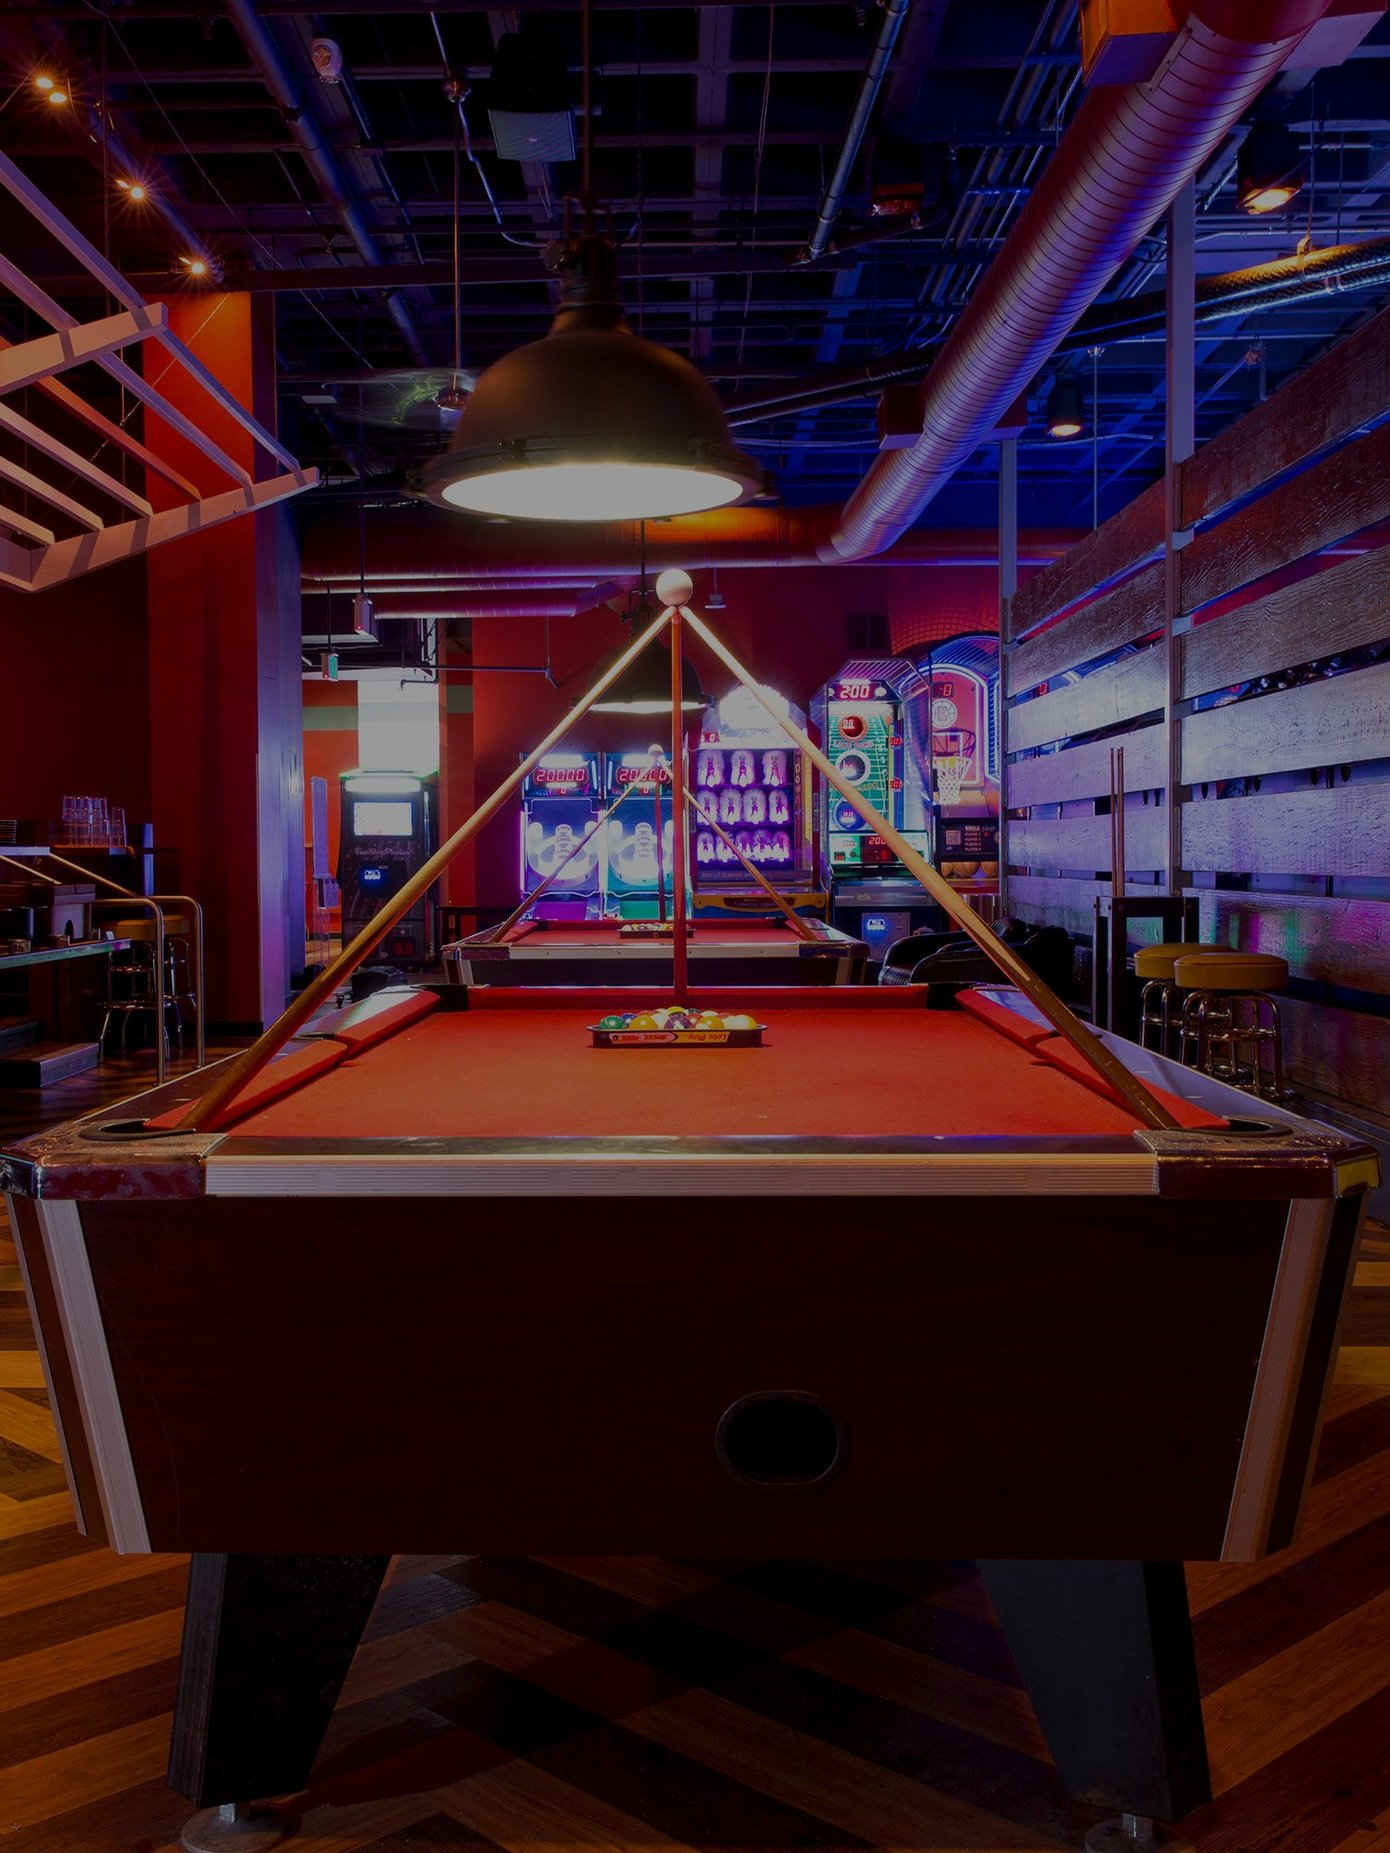 pool table with arcade area in background